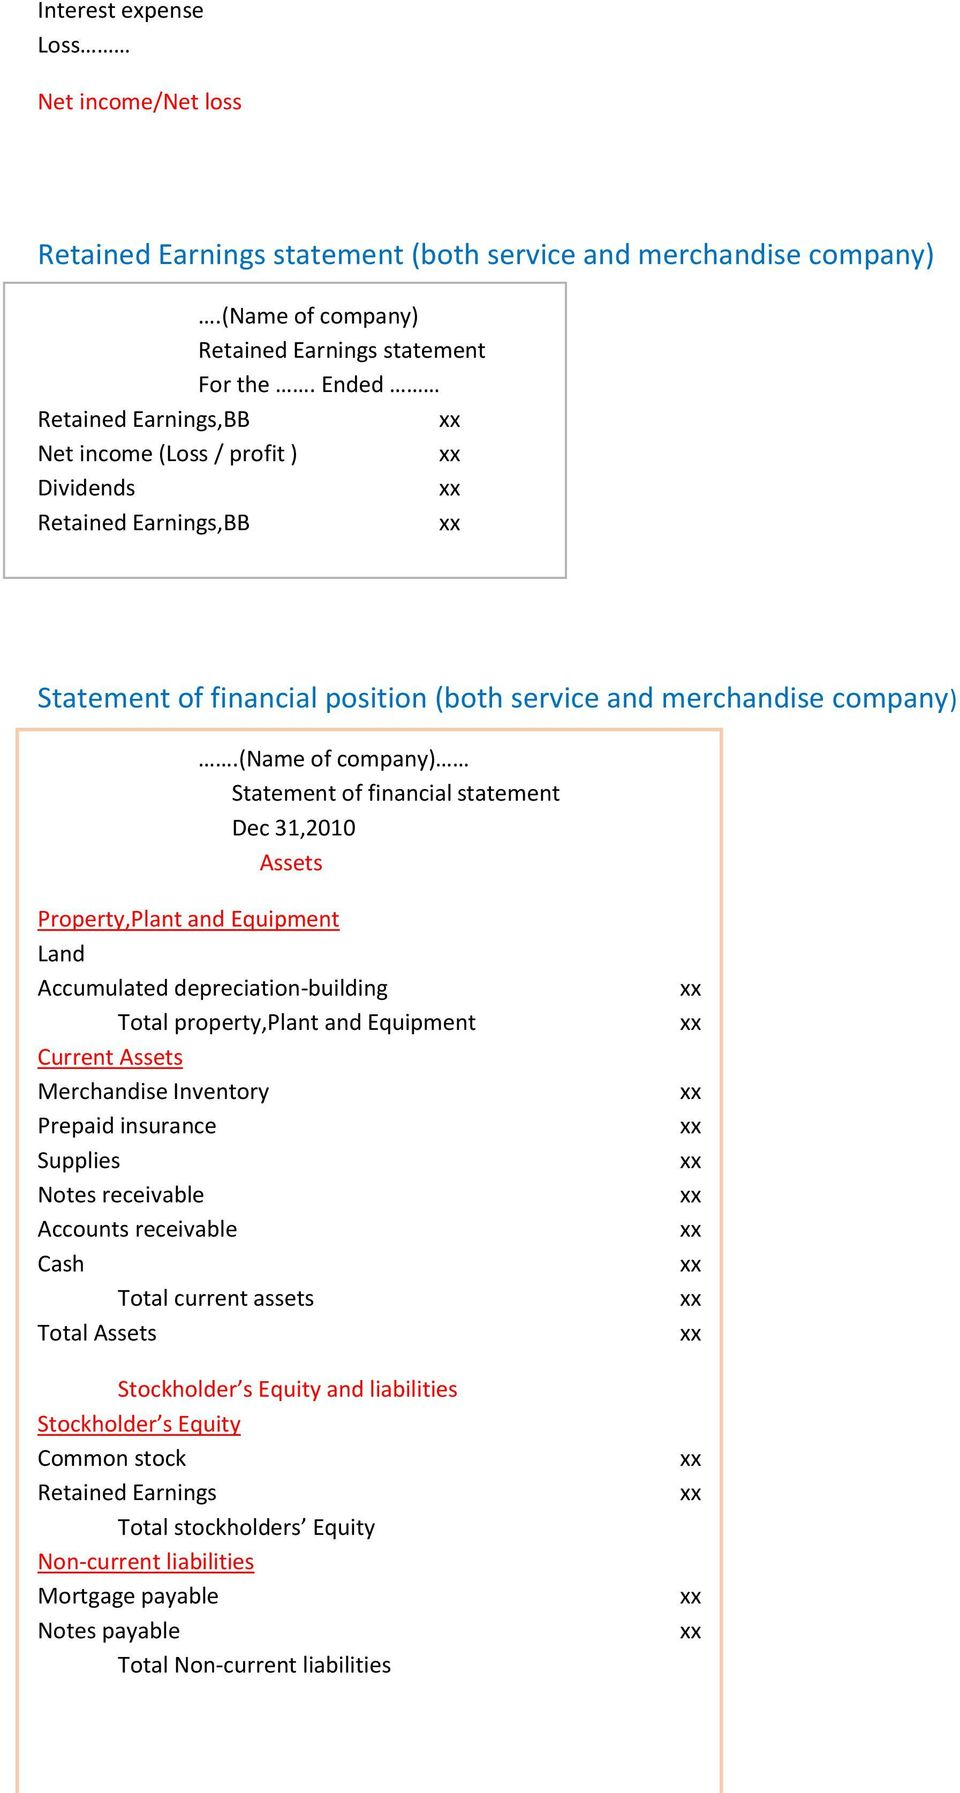 (name of company) Statement of financial statement Dec 31,2010 Assets Property,Plant and Equipment Land Accumulated depreciation-building Total property,plant and Equipment Current Assets Merchandise